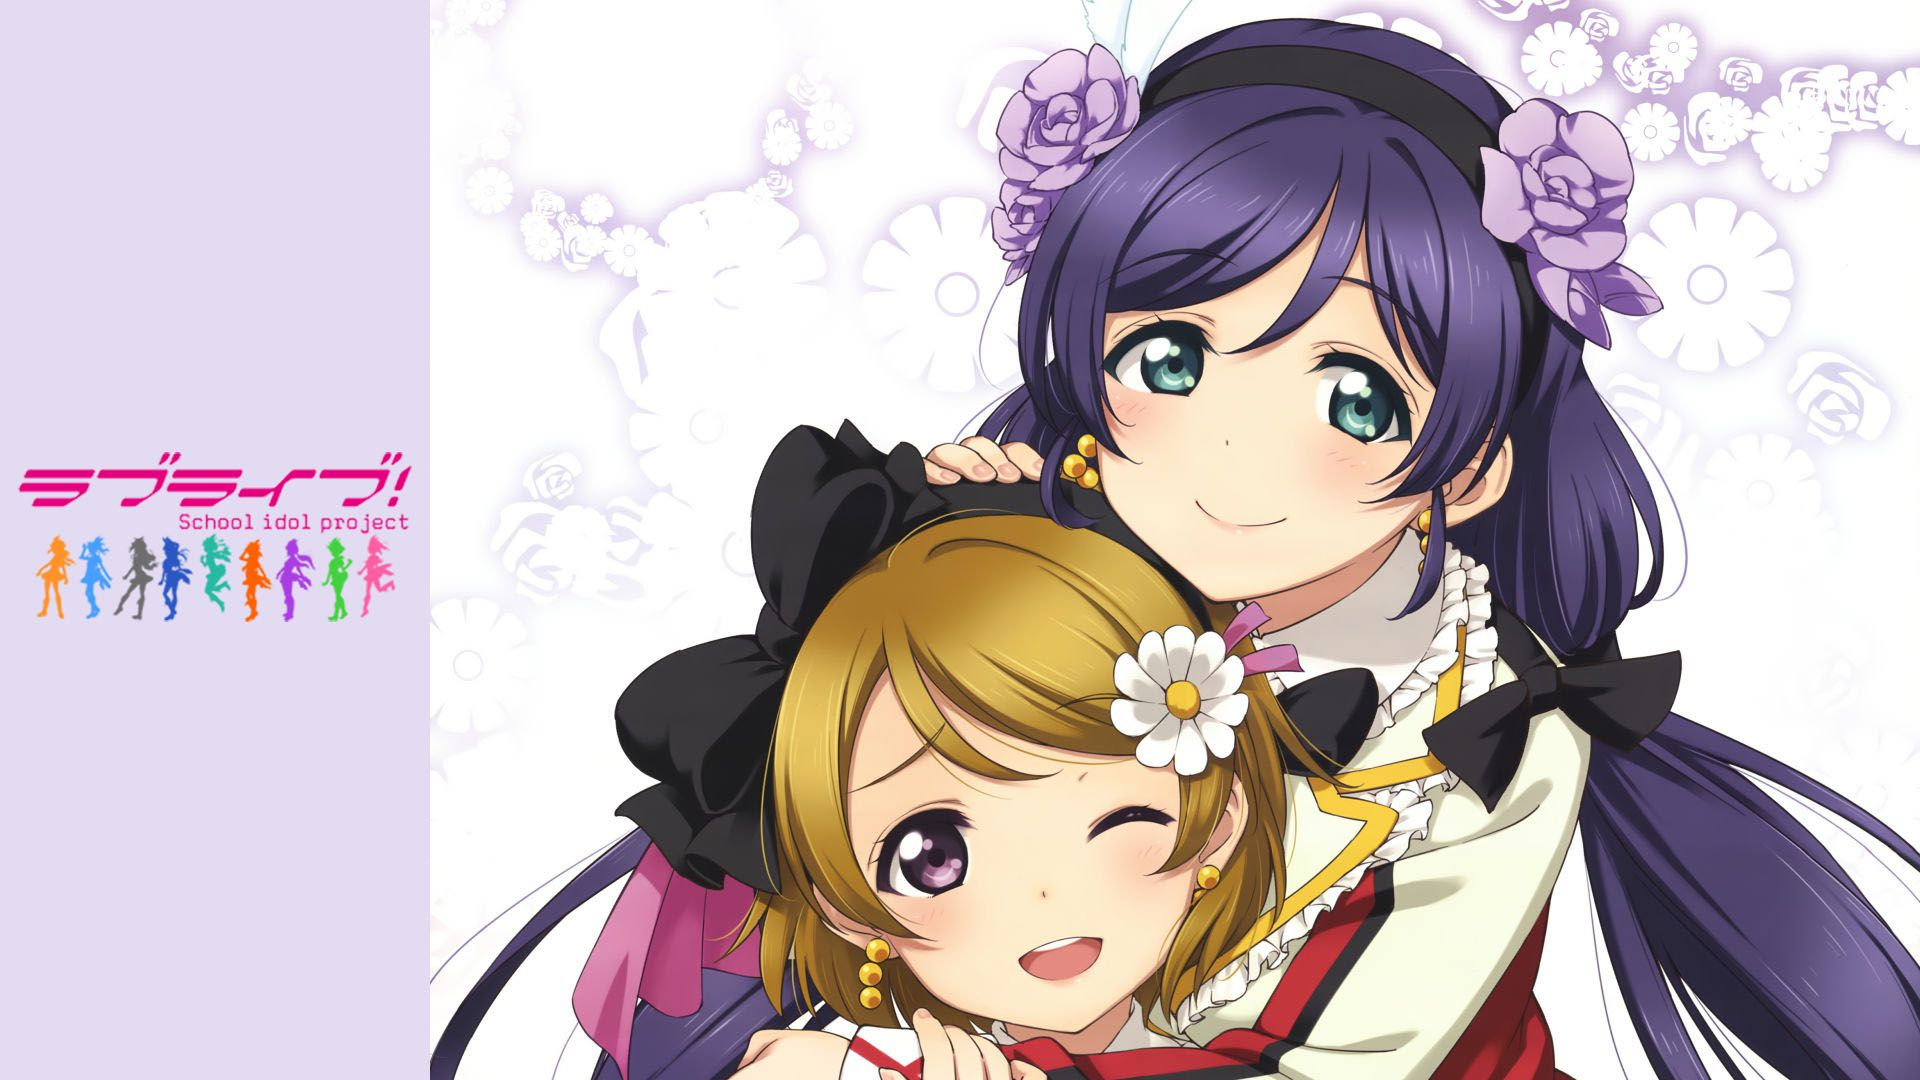 21227_lovelive_PC